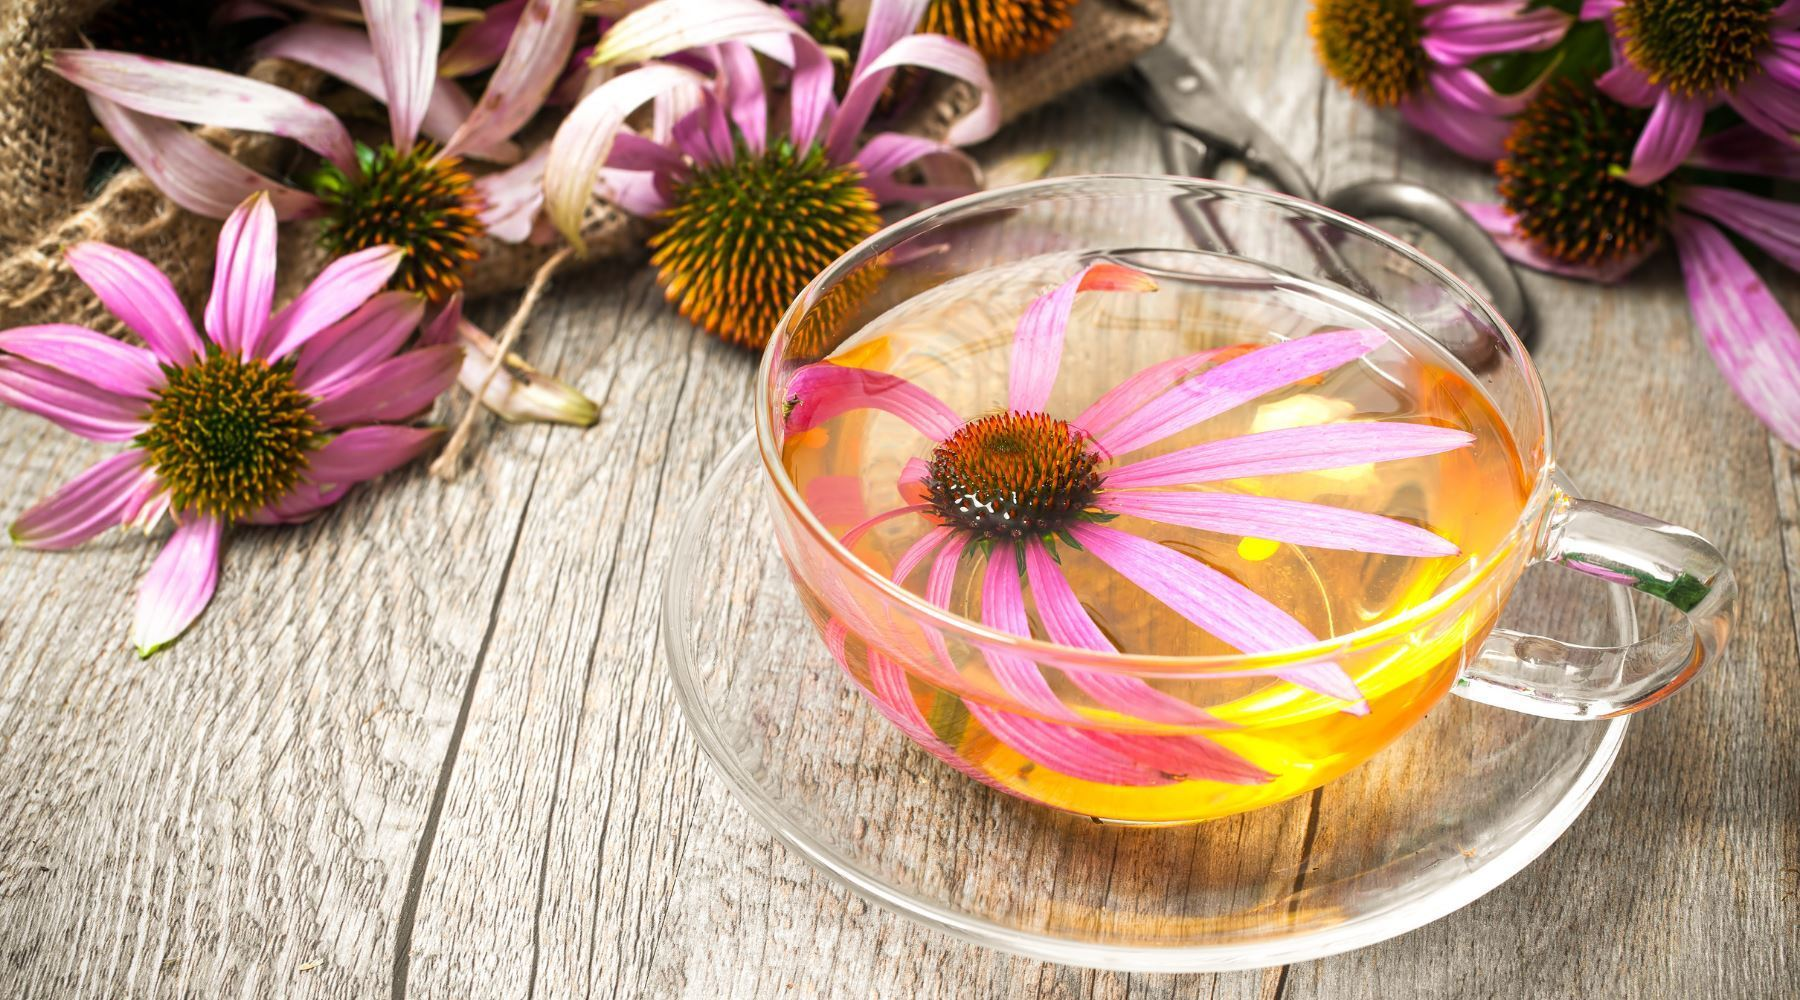 What Is Echinacea Tea? And Can It Help a Cold?